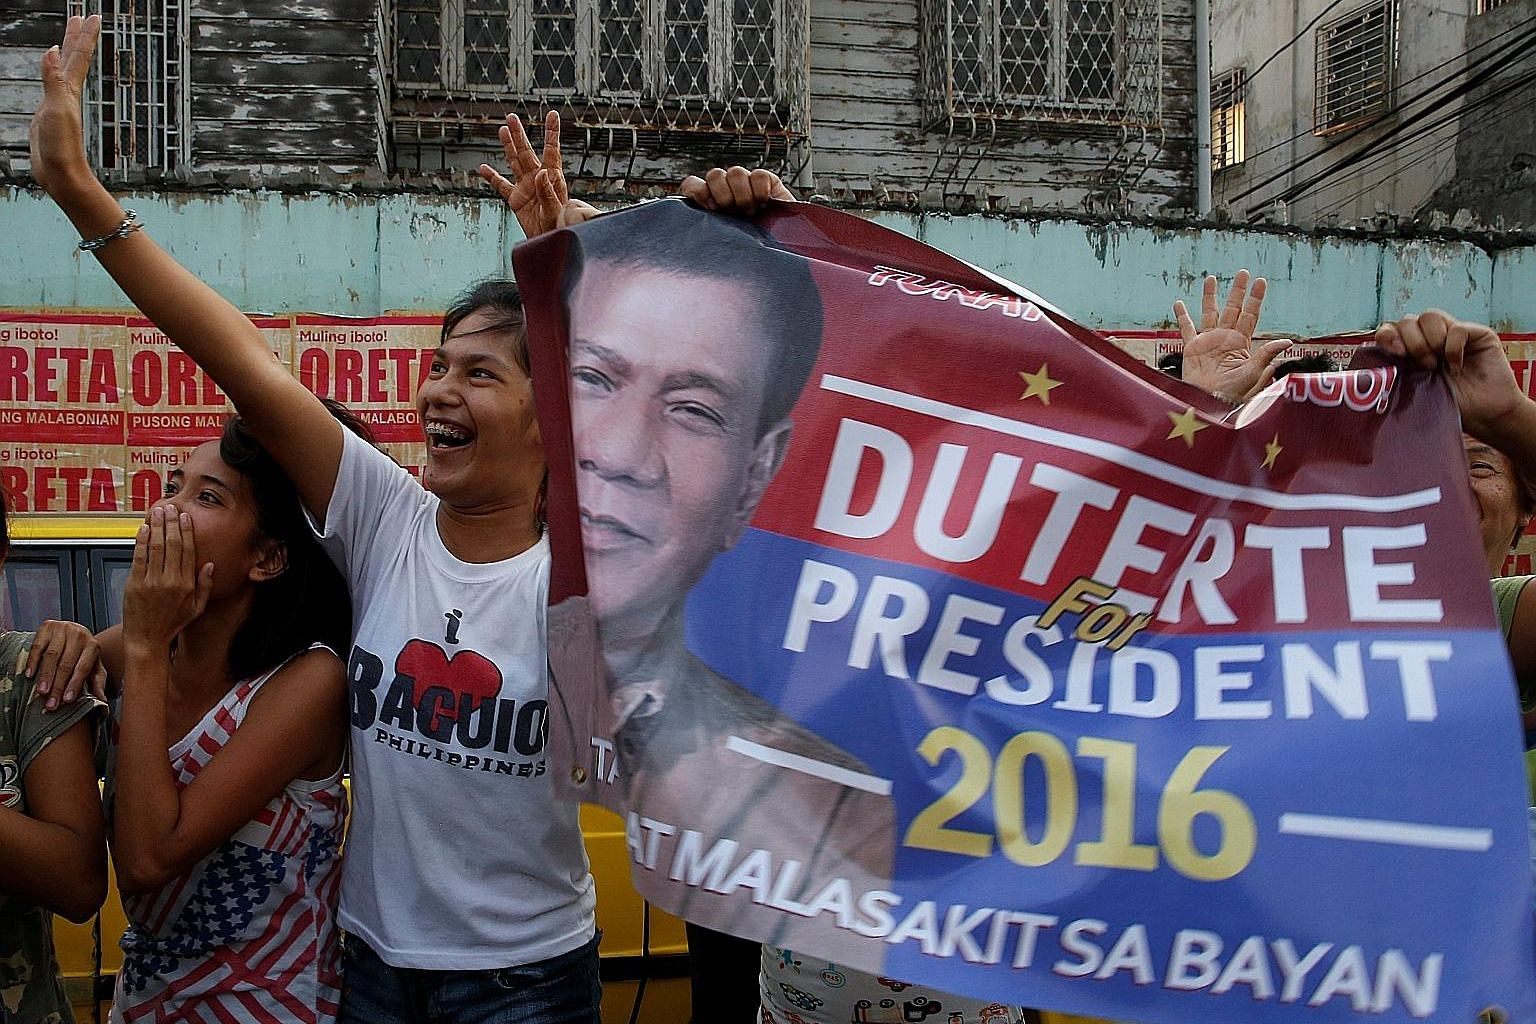 For all that President Benigno Aquino has done for the Philippines, Manila is still plagued by monstrous traffic jams and frequent train breakdowns, and those outside the capital complain that jobs and investments have not reached them. For many, the